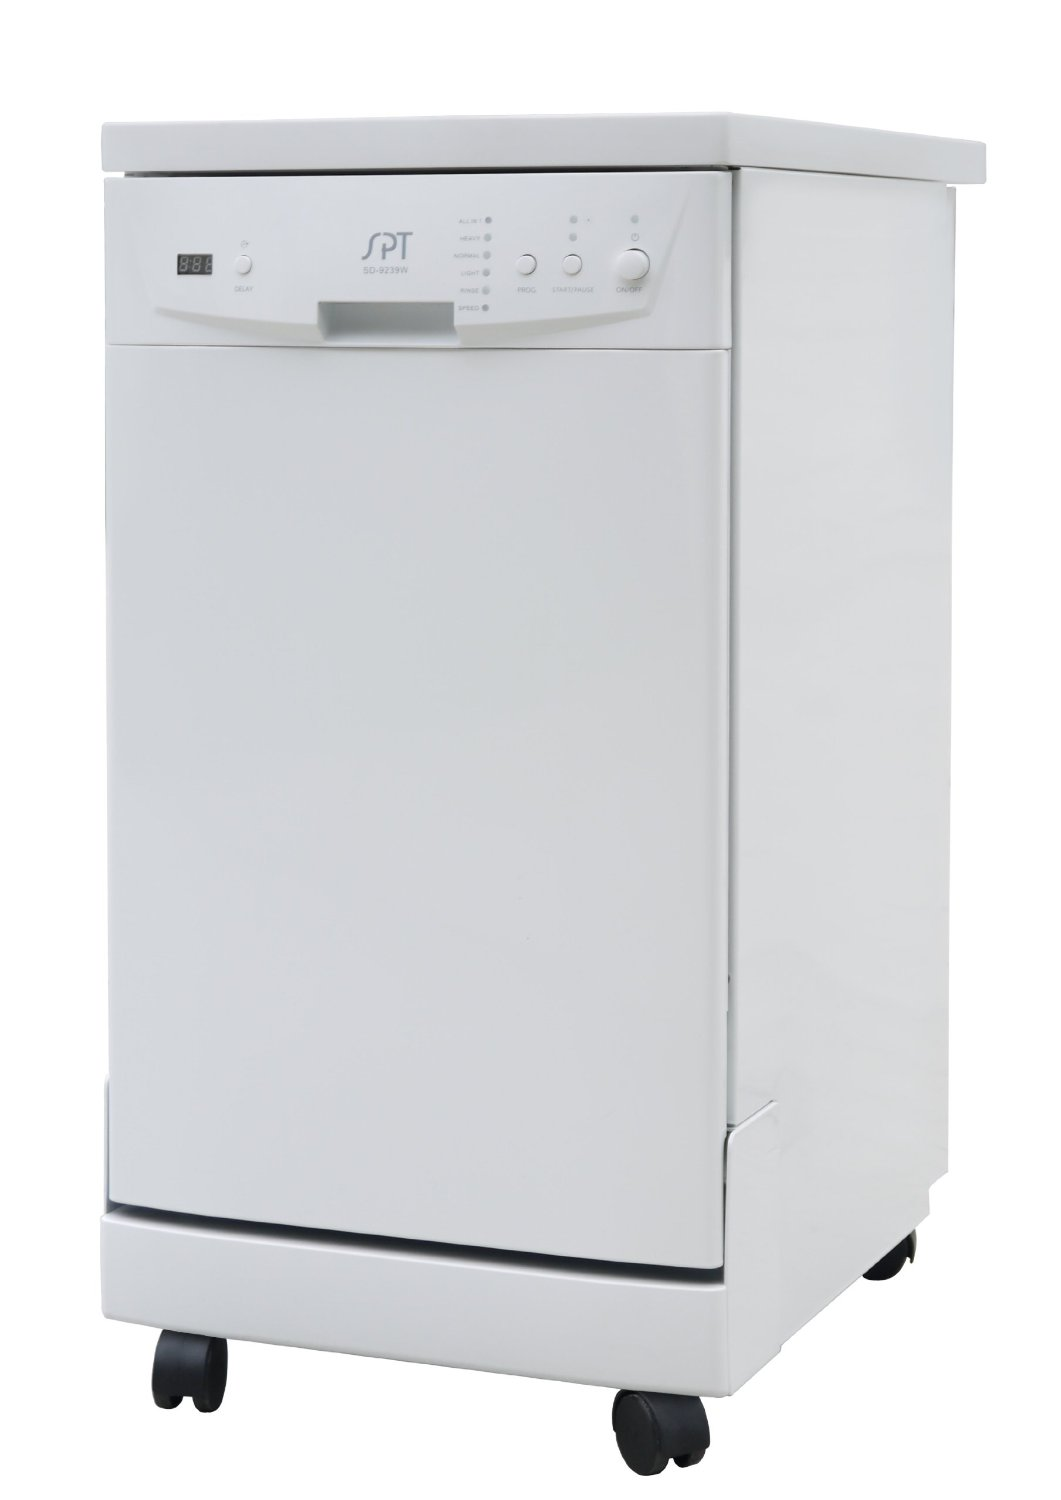 Small Dish Washer Best Portable Dishwashers In The Price Range 450 650